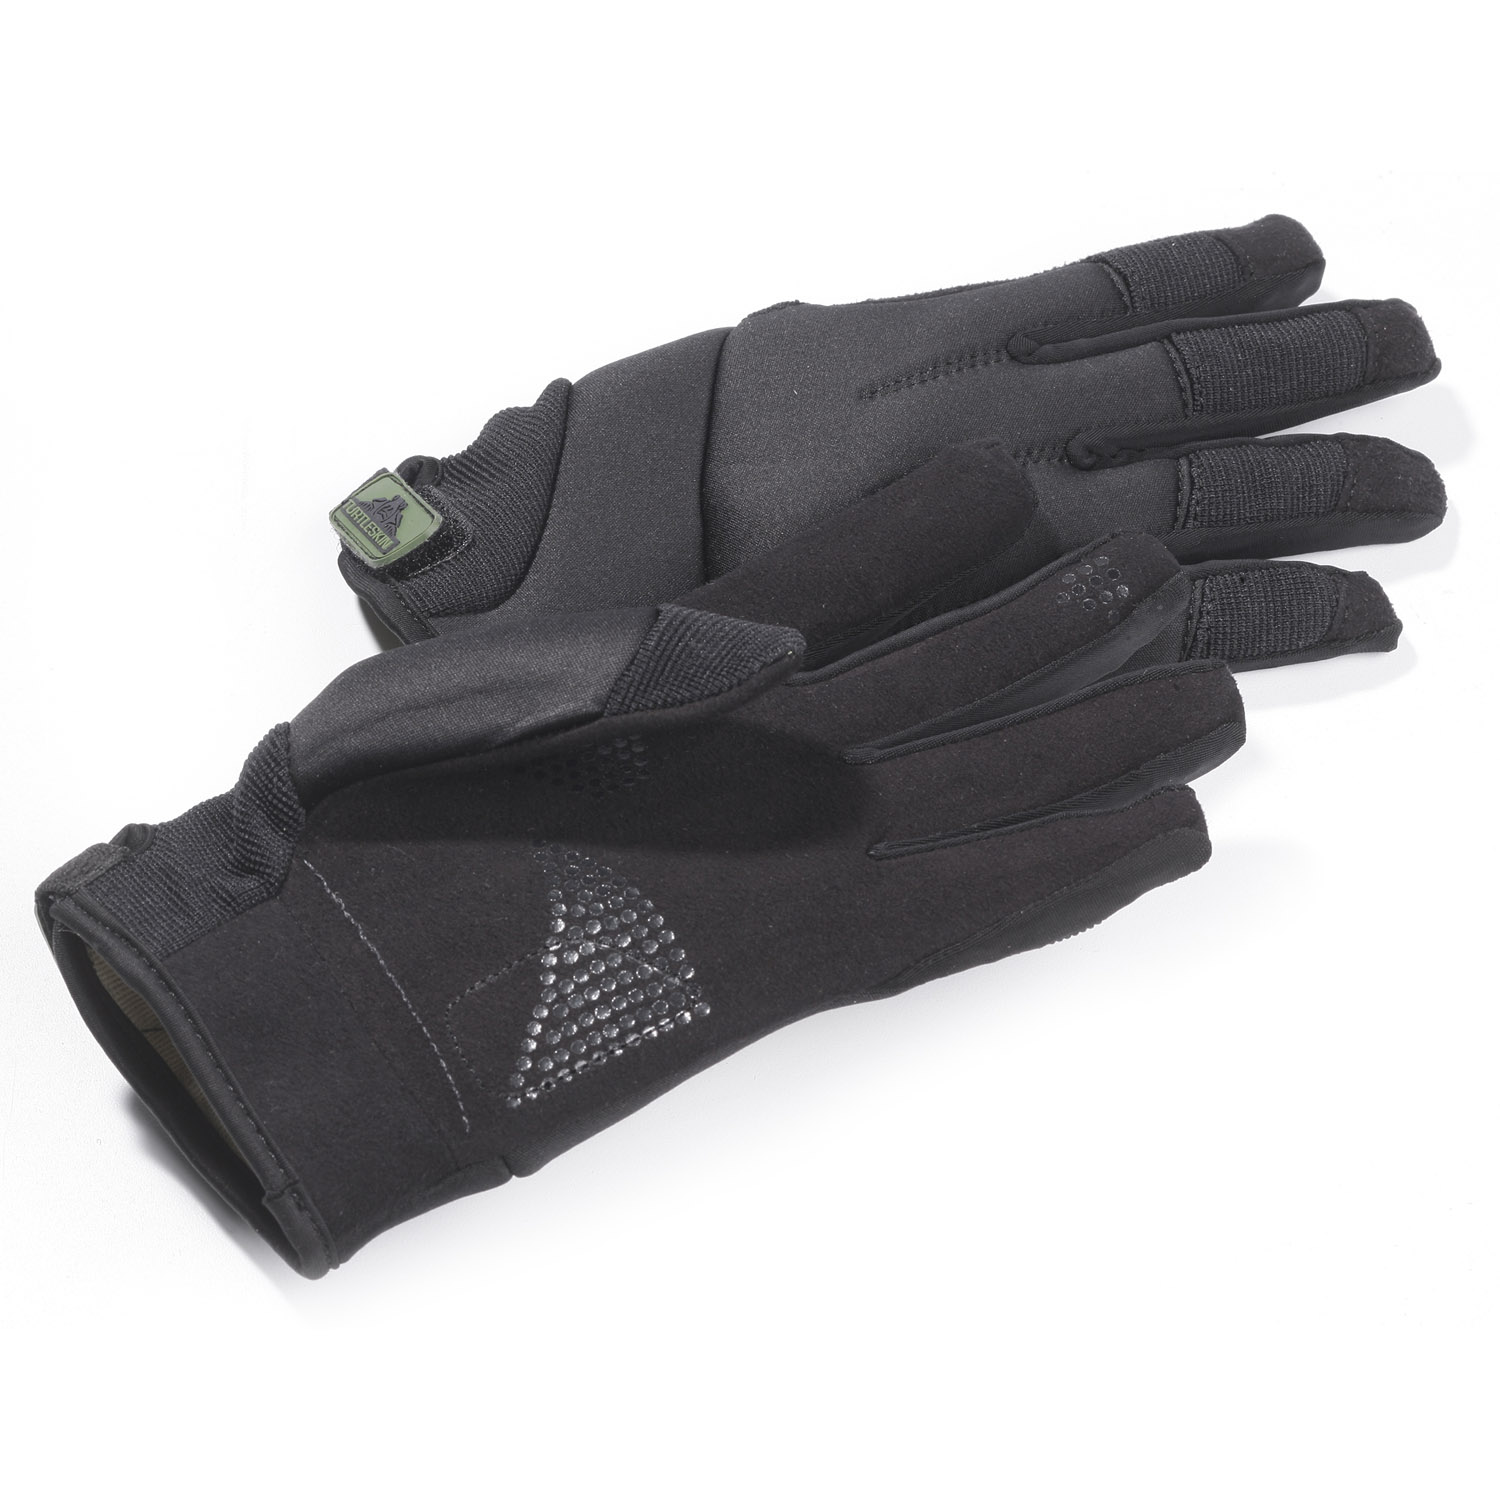 TurtleSkin Alpha Glove